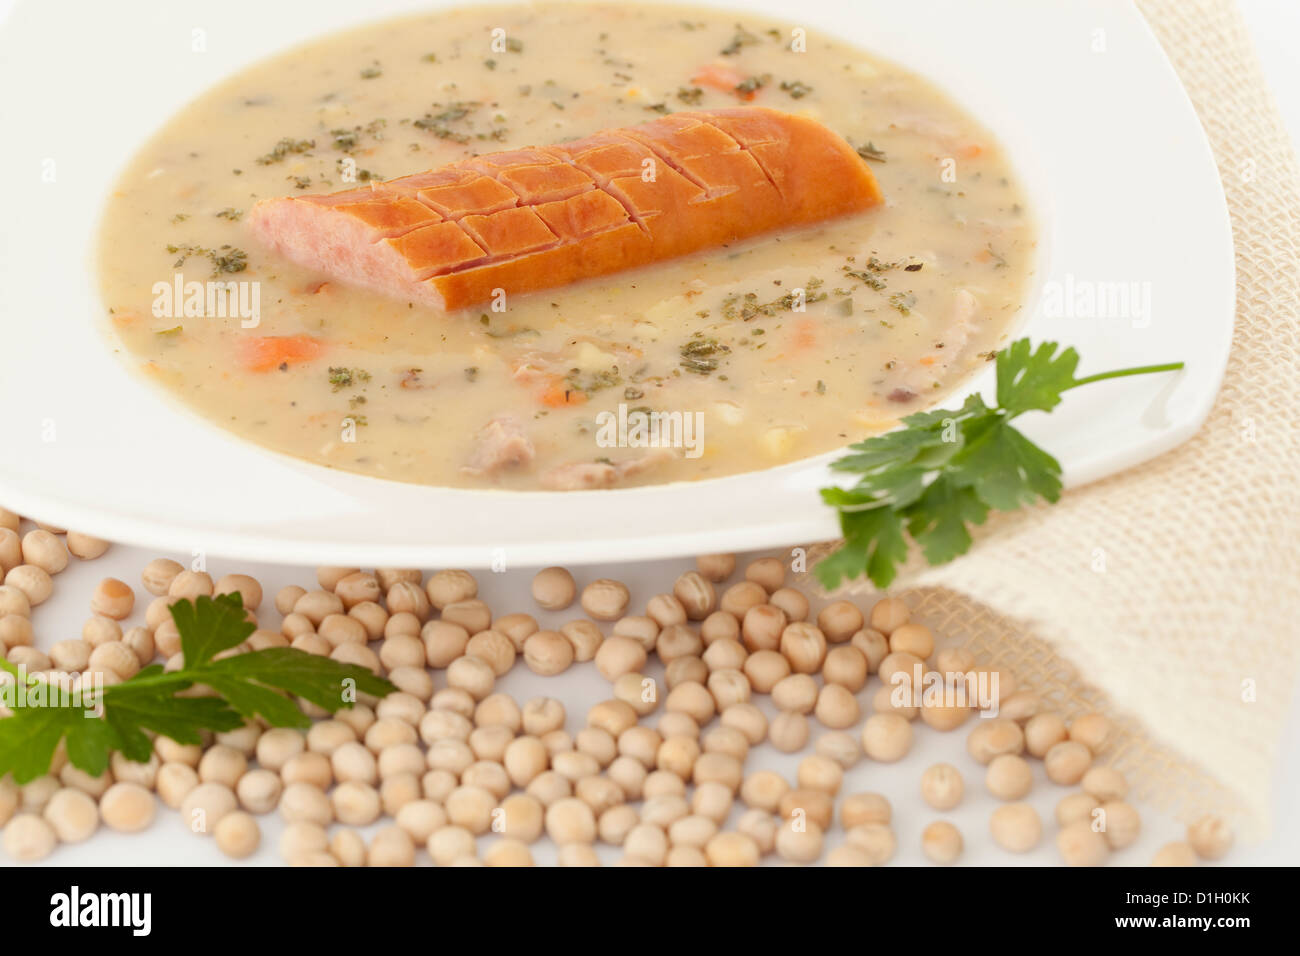 Polish soup with dry pea on white background - Stock Image